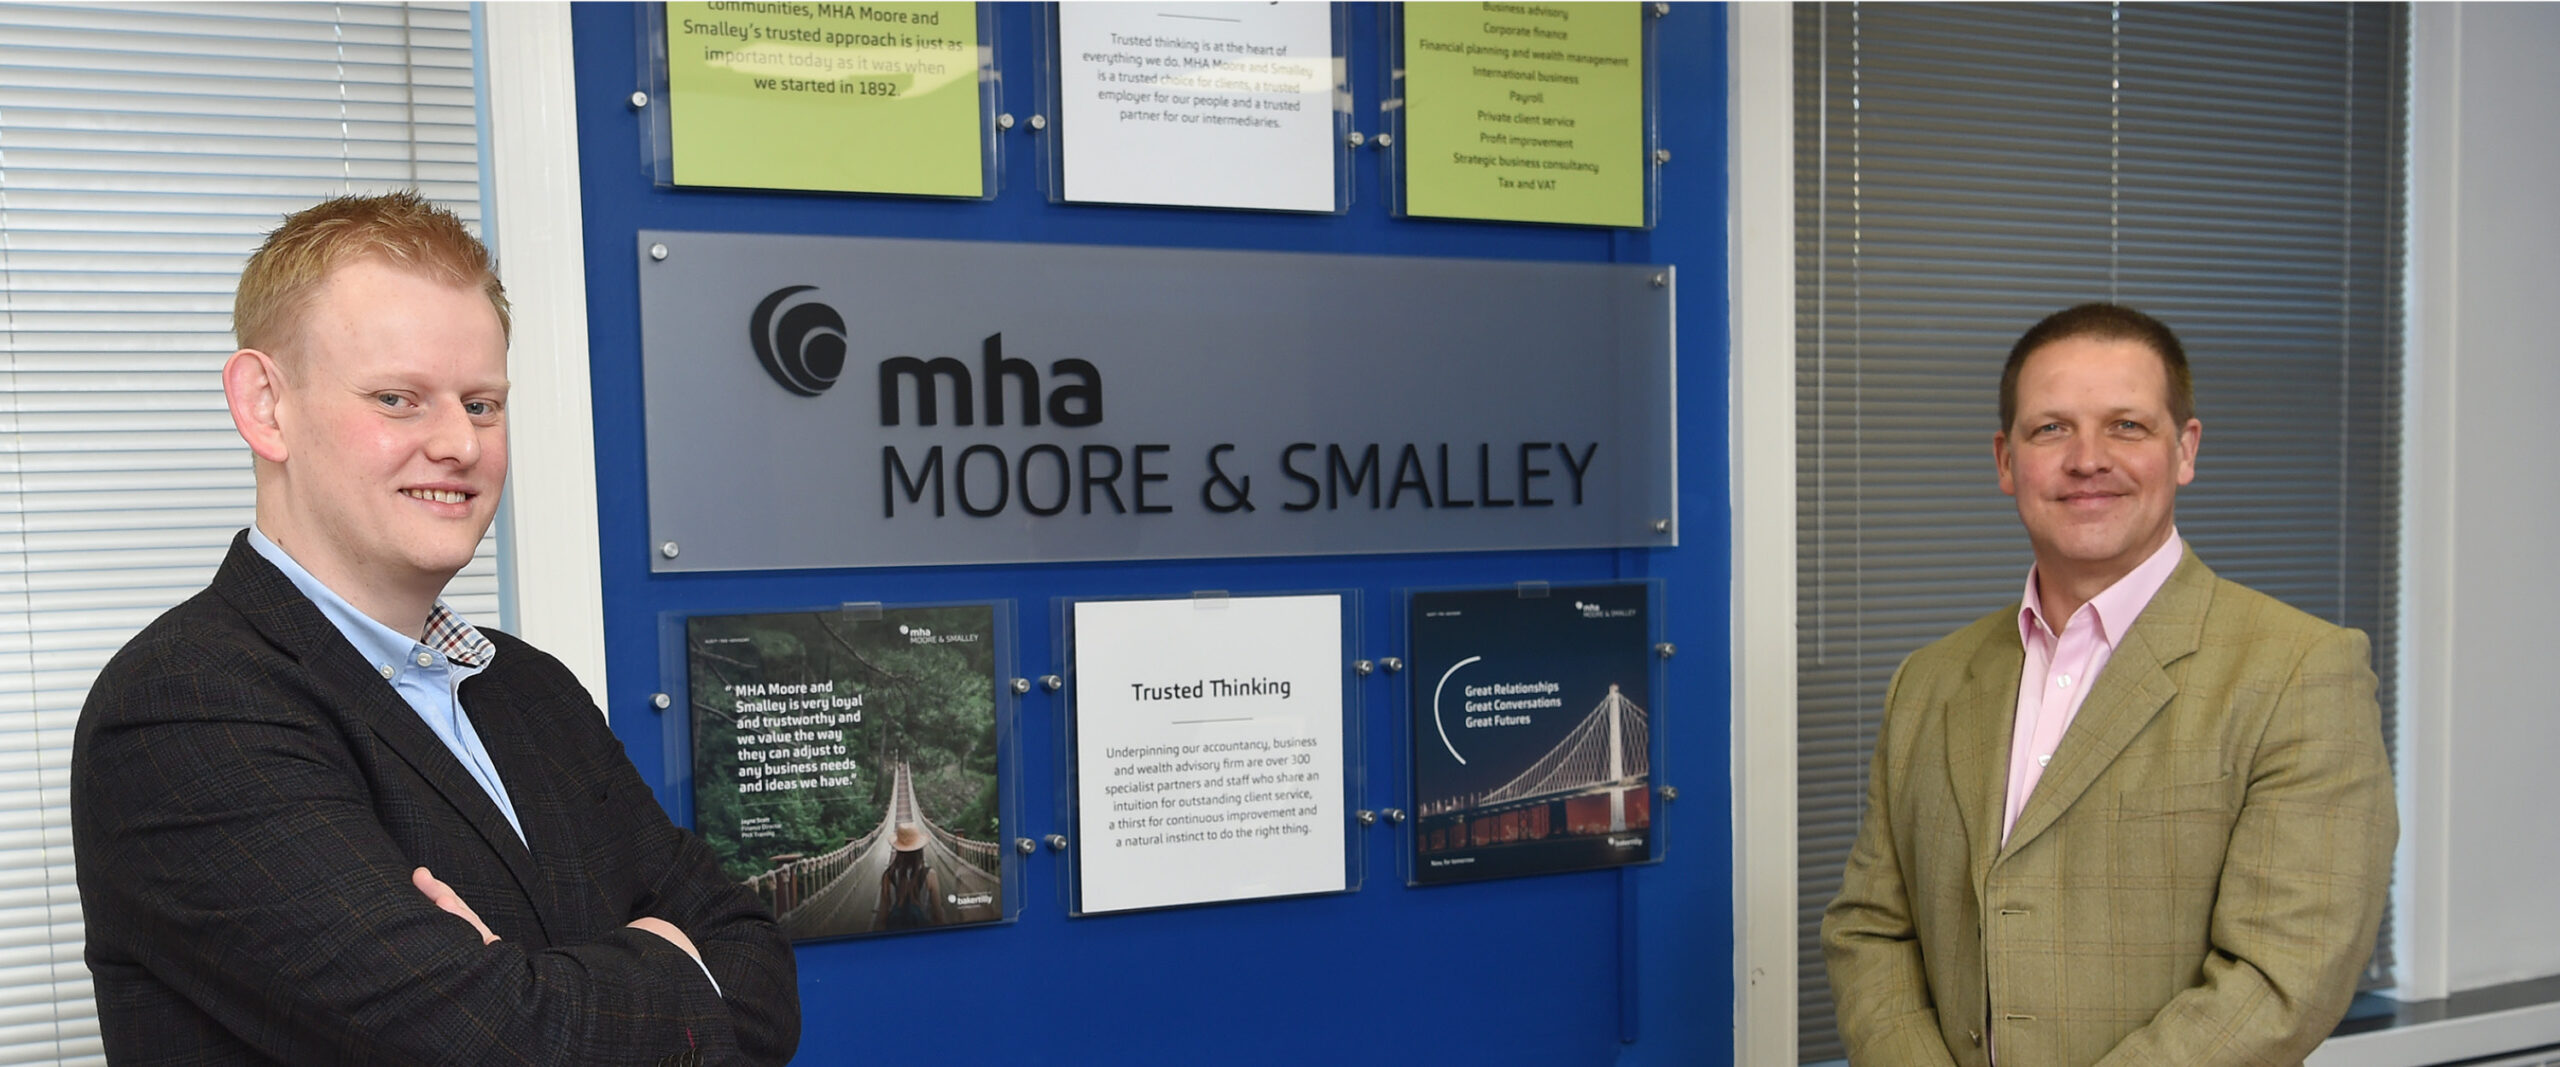 MHA Moore and Smalley appoints new partner